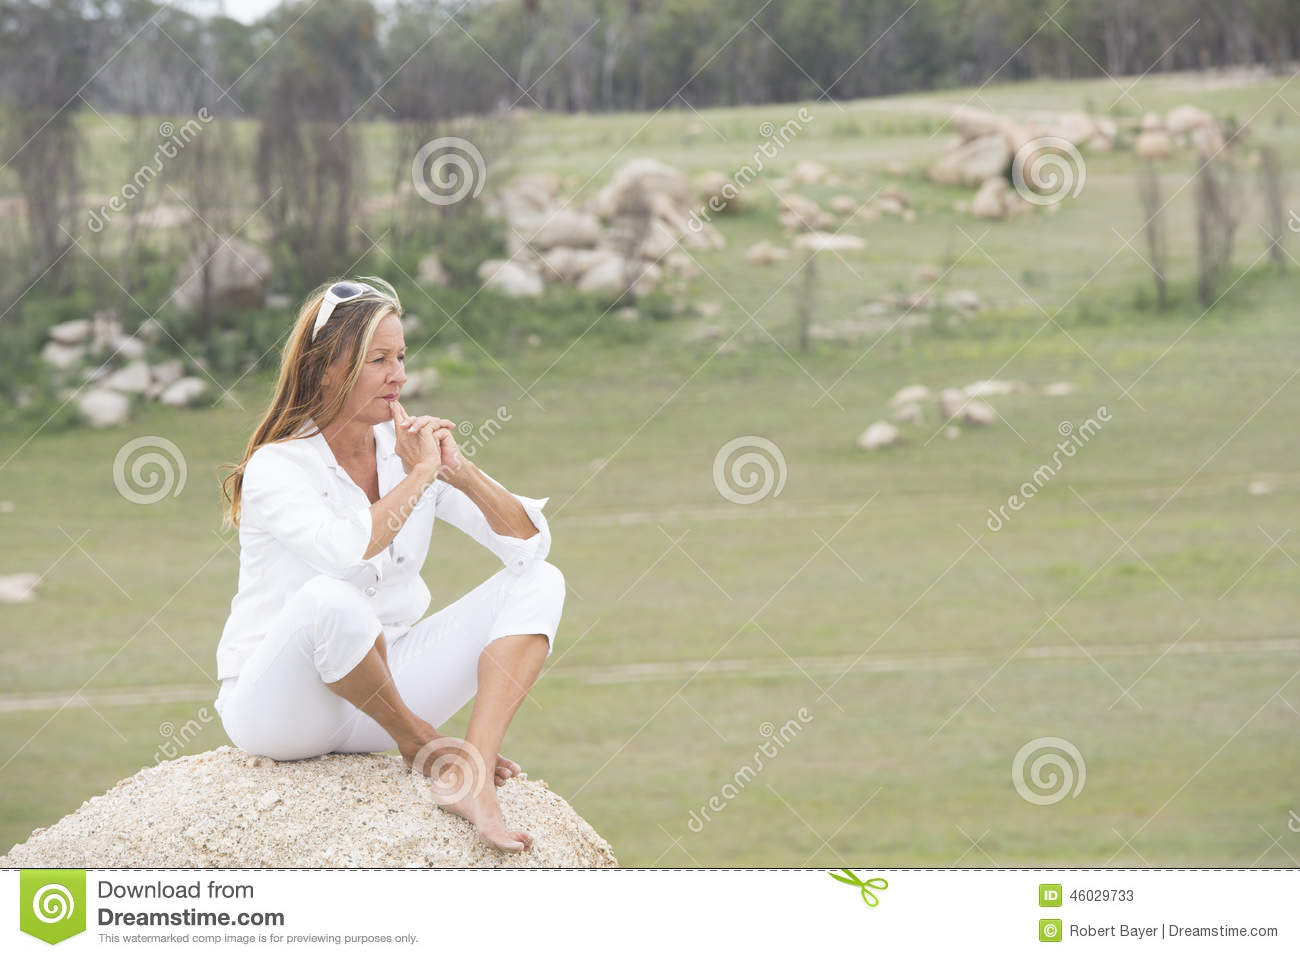 thoughtful woman outdoor sitting on rock stock image - image of